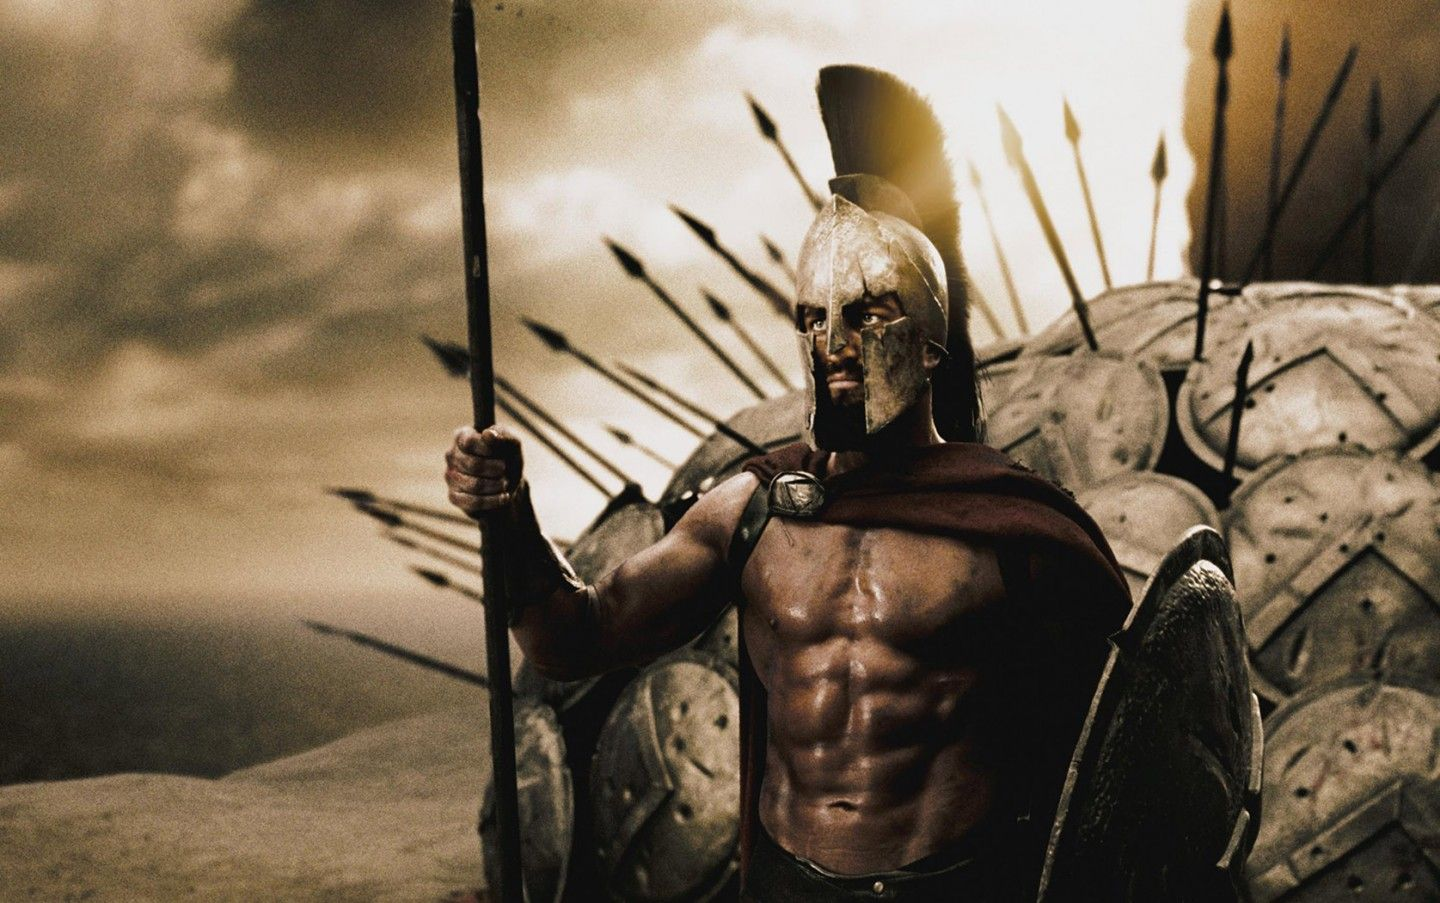 The 300 Workout: Get a Ripped Spartan Body | Onnit Academy